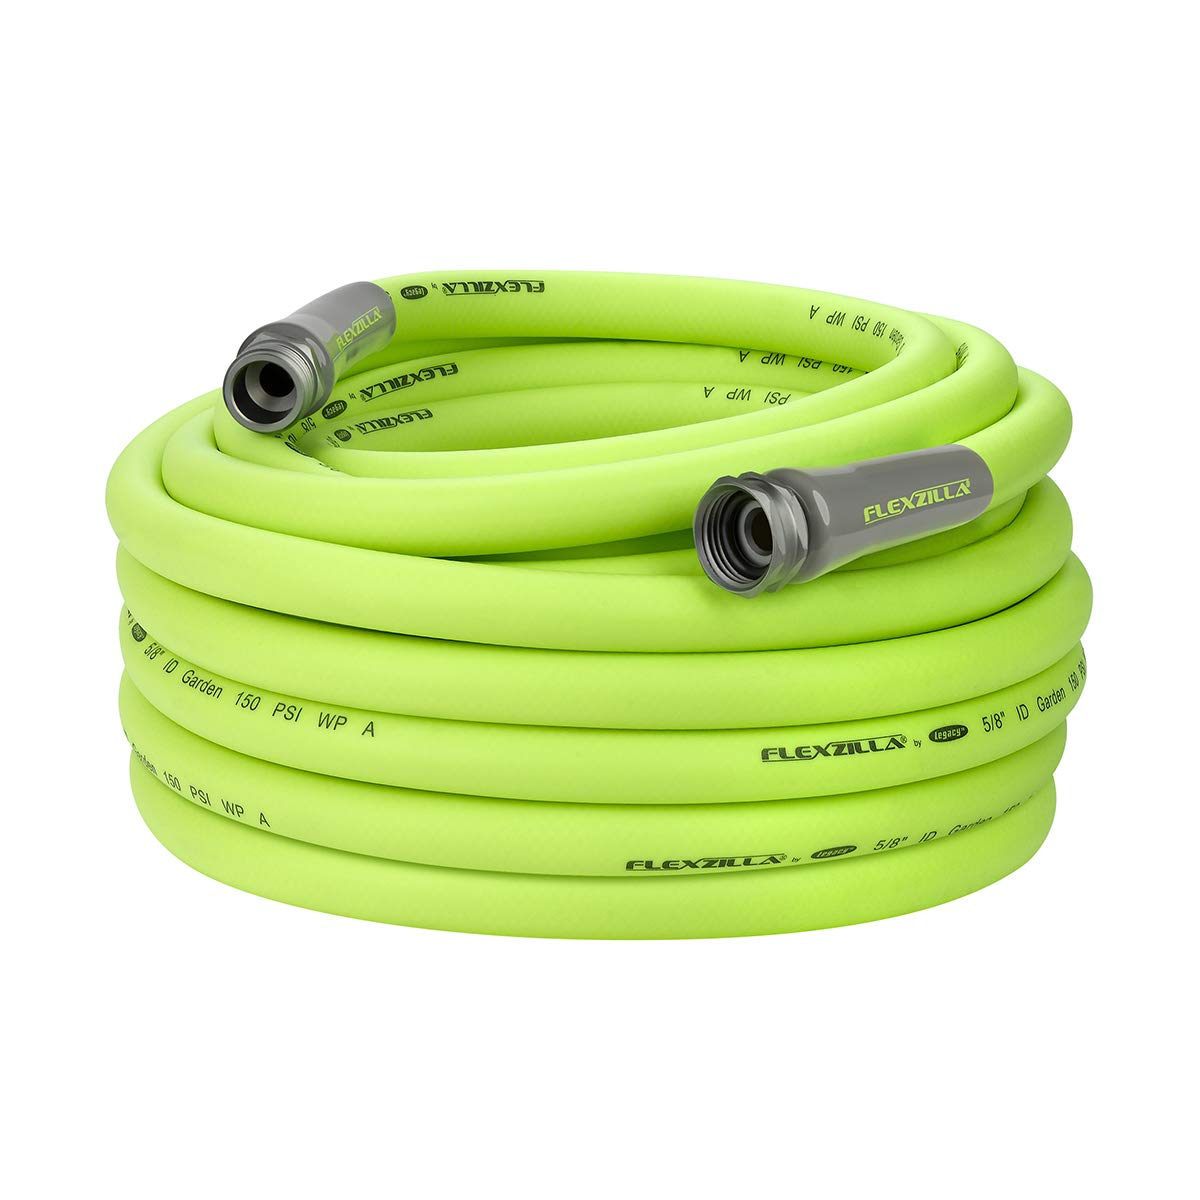 Flexzilla HFZG575YW-E Garden Lead-in Hose 5/8 in. x 75 ft, Heavy Duty, Lightweight, Drinking Water Safe, HFZG575YW